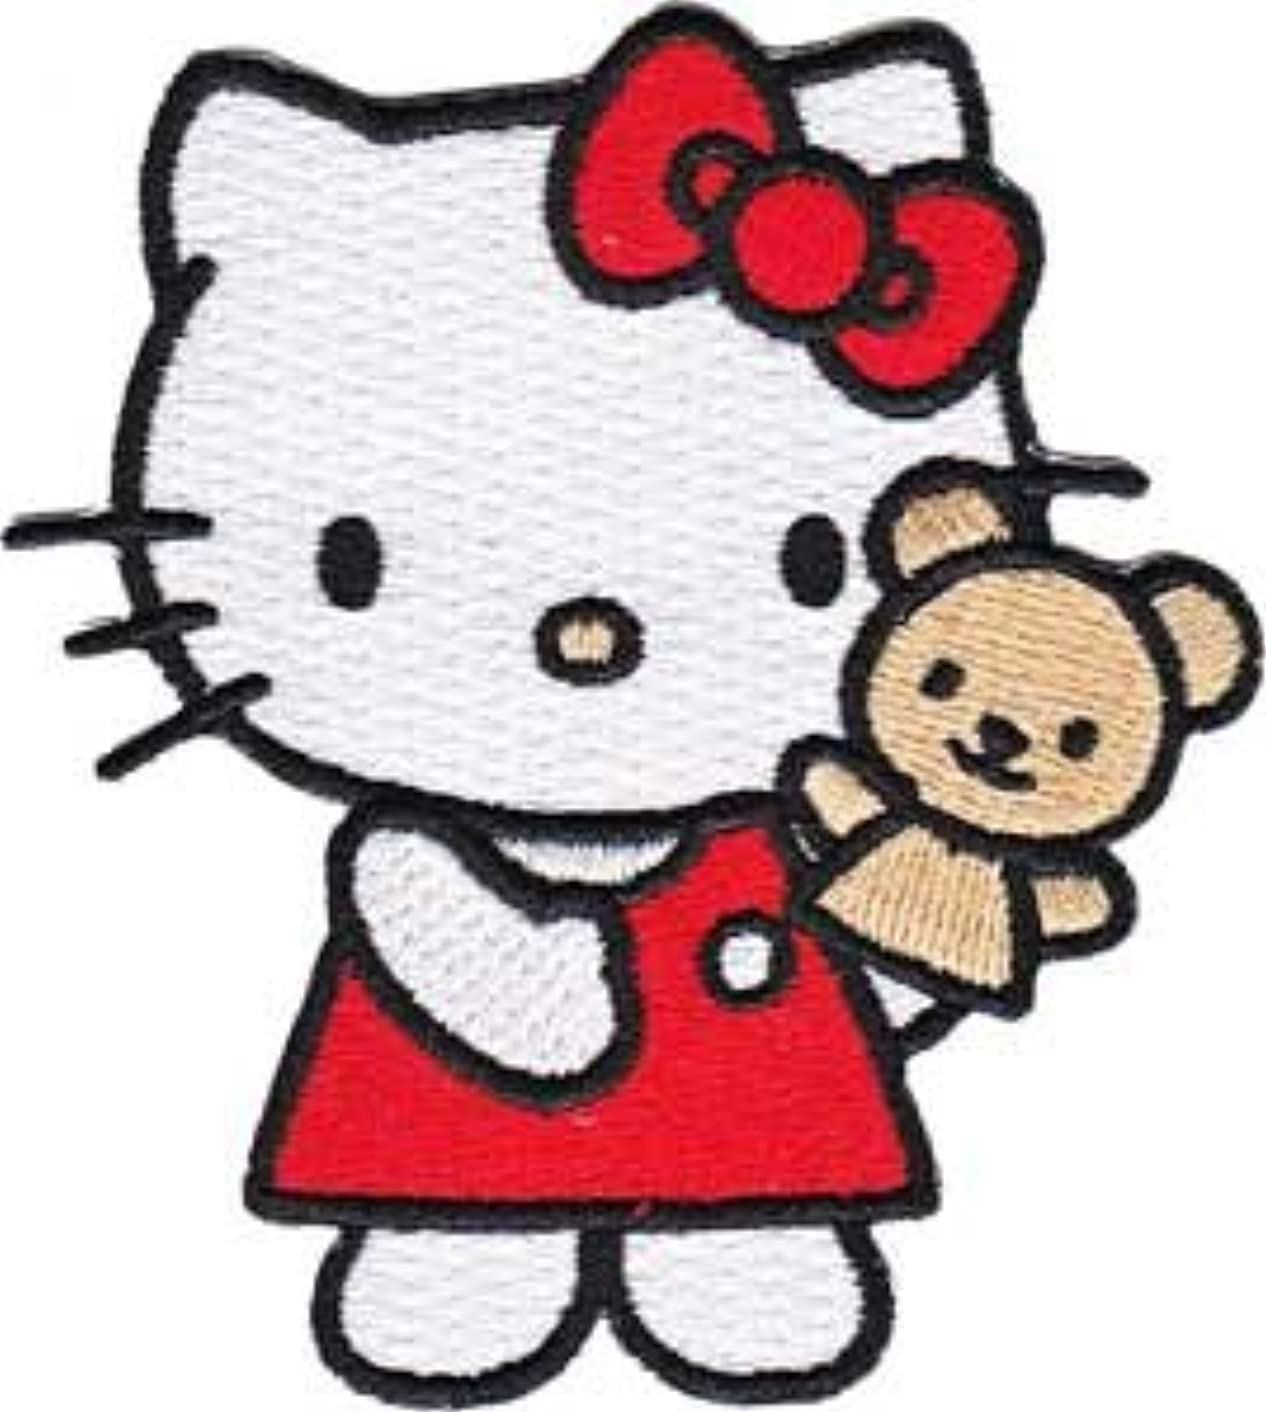 Sanrio Hello Kitty Iron On Patch - Red Dress Cat w/ Teddy Bear Applique